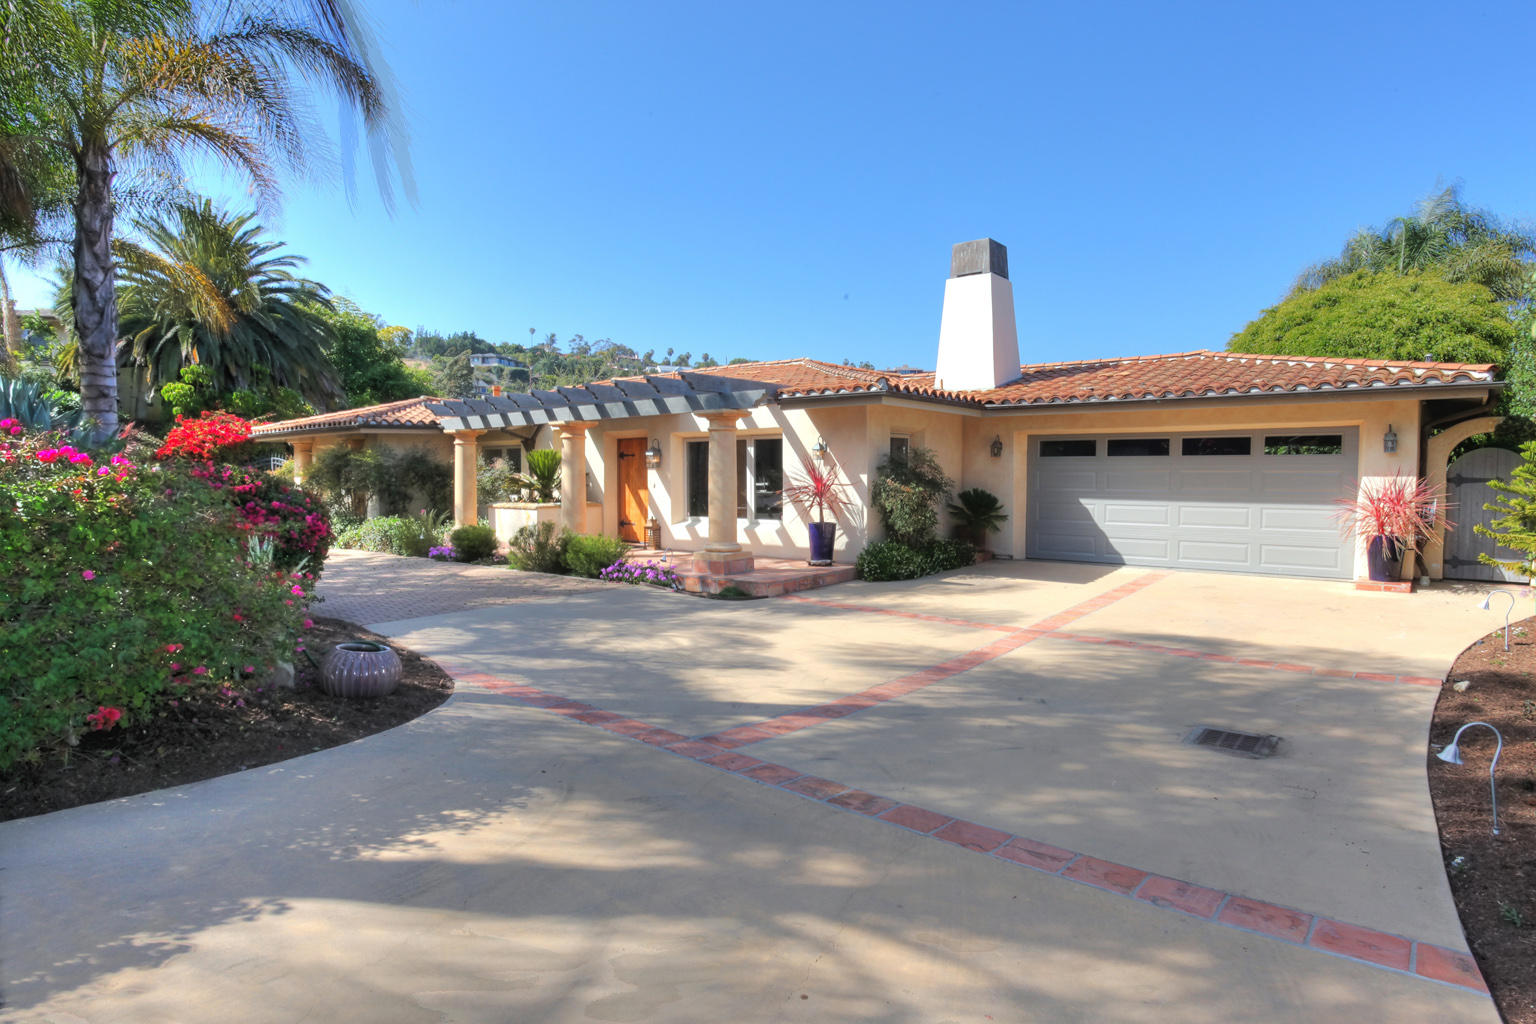 Property photo for 524 La Marina Santa Barbara, California 93109 - 15-1935